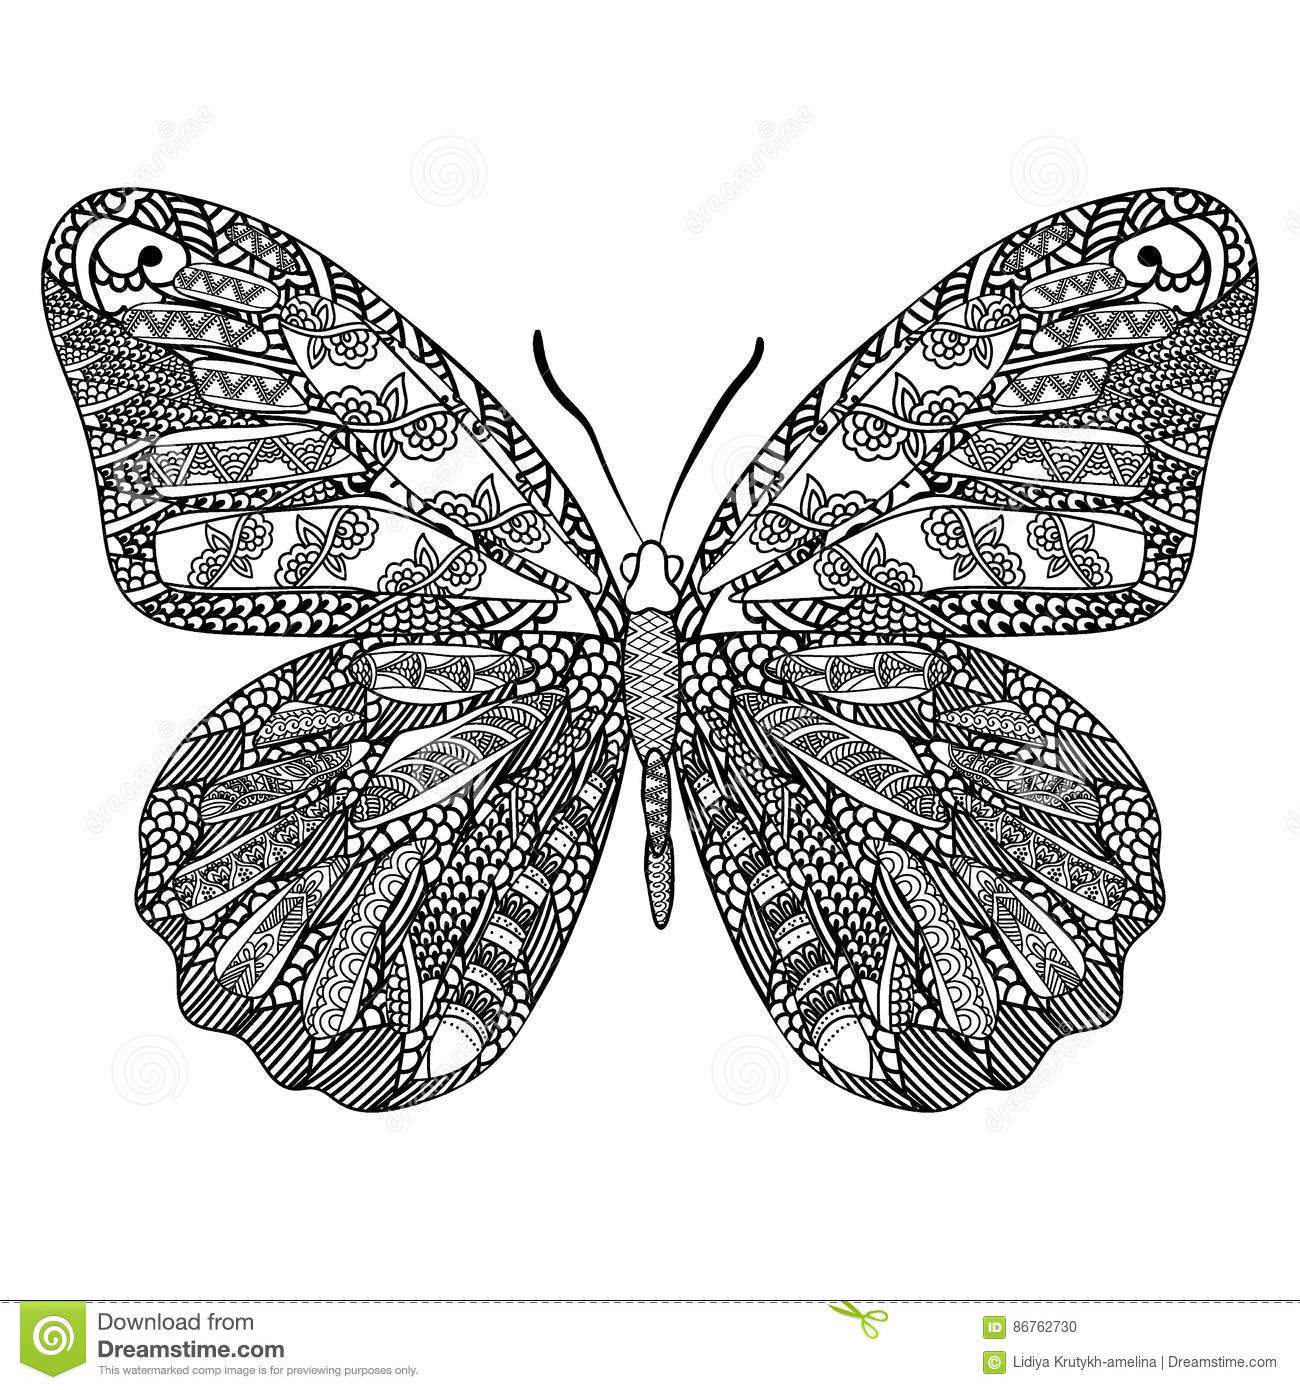 Royalty Free Vector Download Butterfly With Ethnic Doodle Pattern Zentangle Inspired For Anti Stress Coloring Book Pages